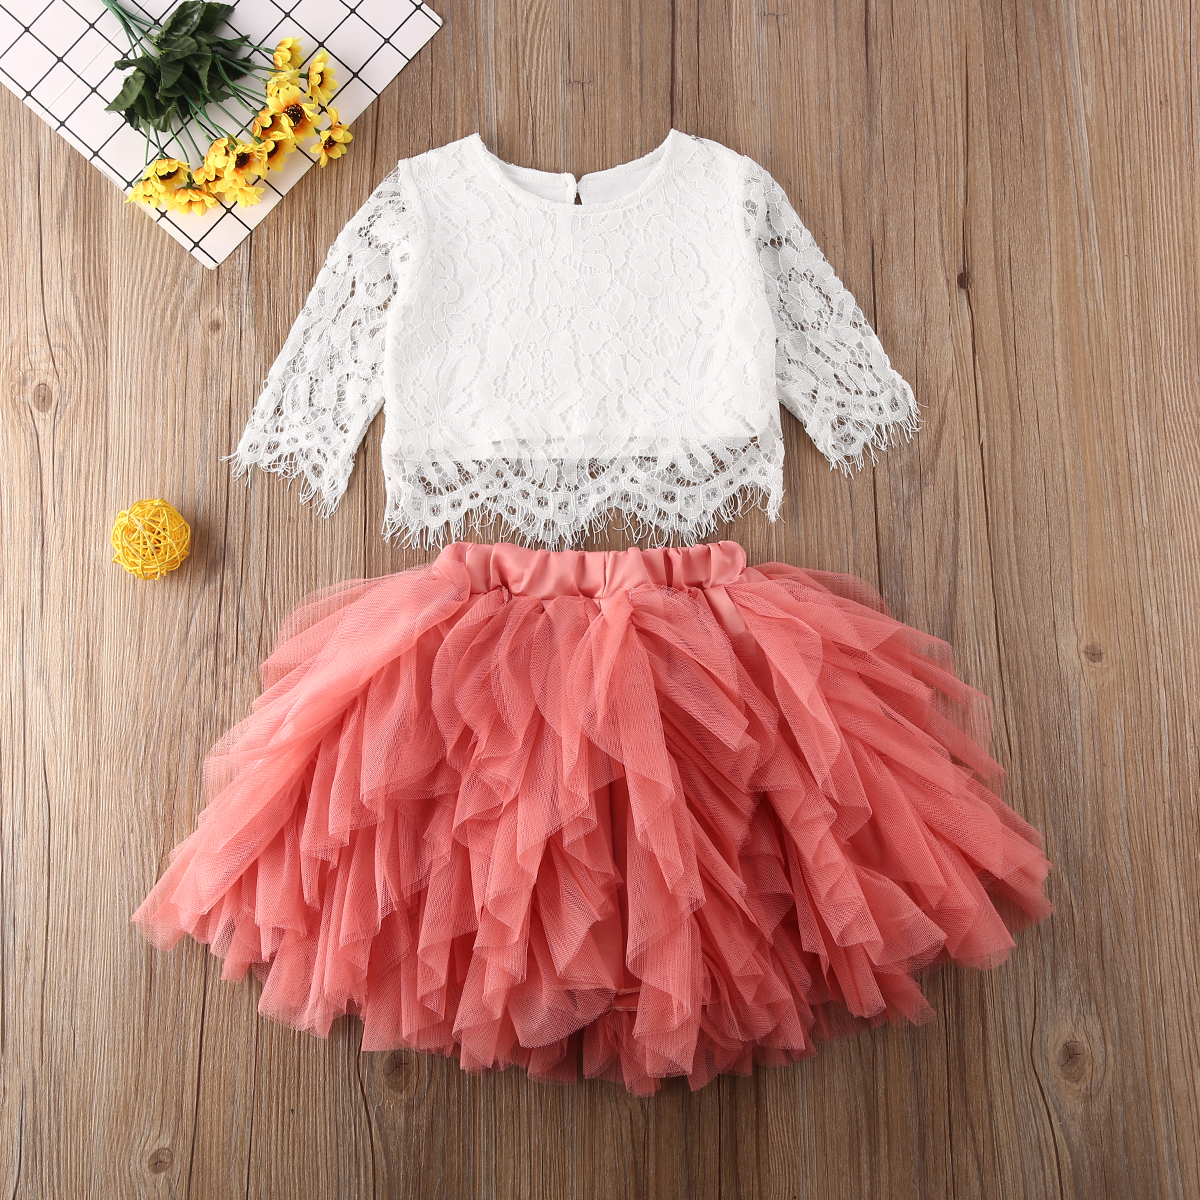 Pudcoco Toddler Baby Girl Clothes Solid Color Lace Flower Ruffle Tops Tulle Ruffle Skirt 2Pcs Outfits Cotton Clothes